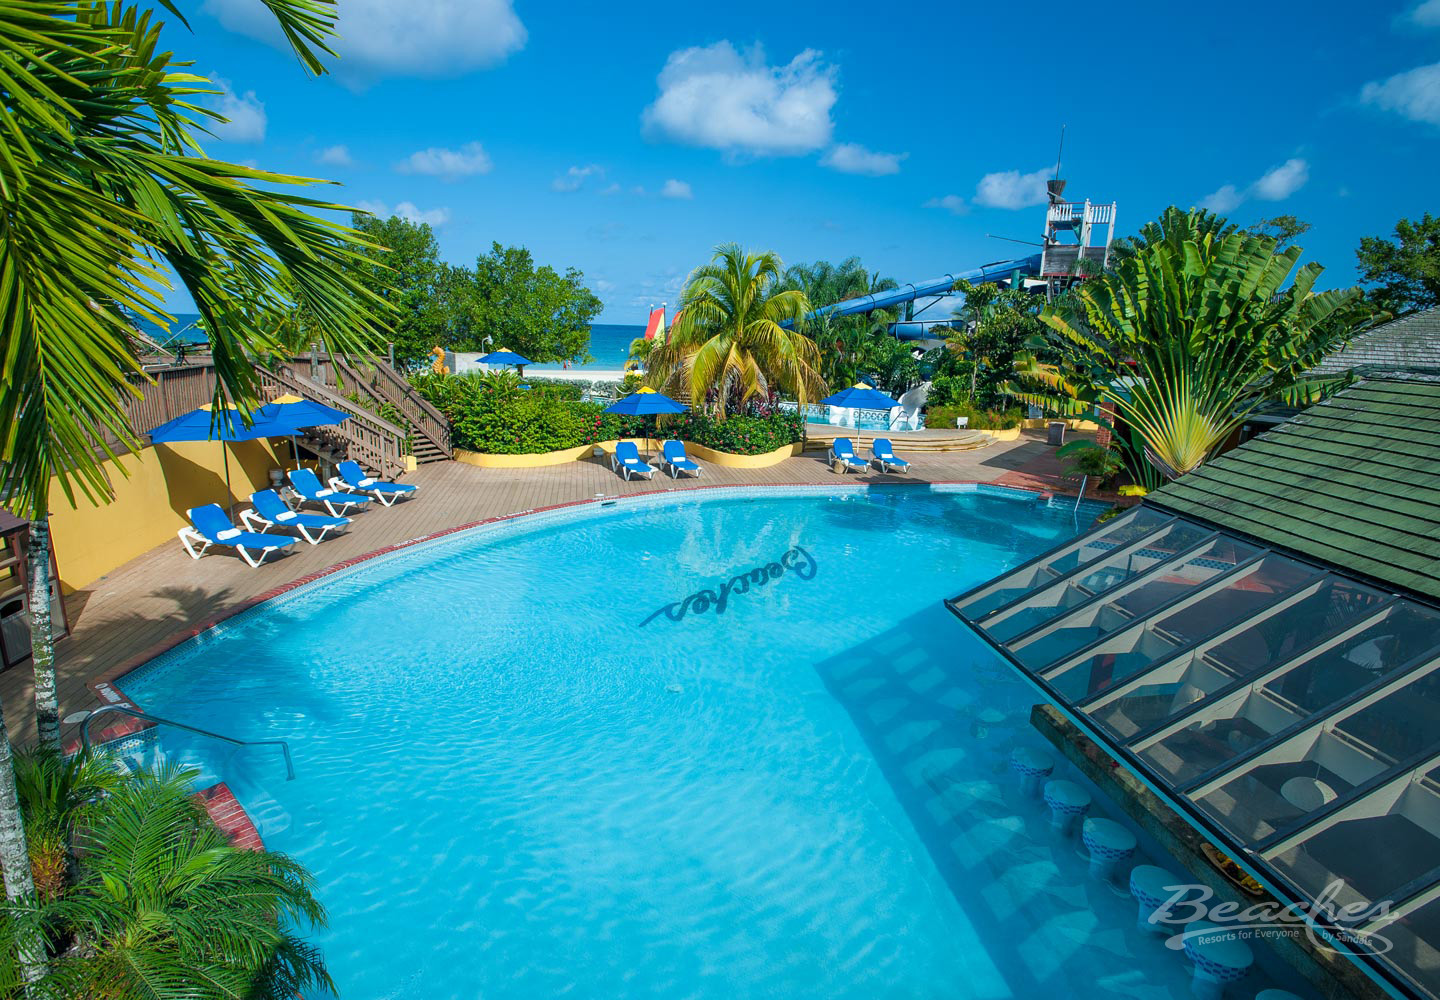 Travel Agency All-Inclusive Resort Beaches Negril 045